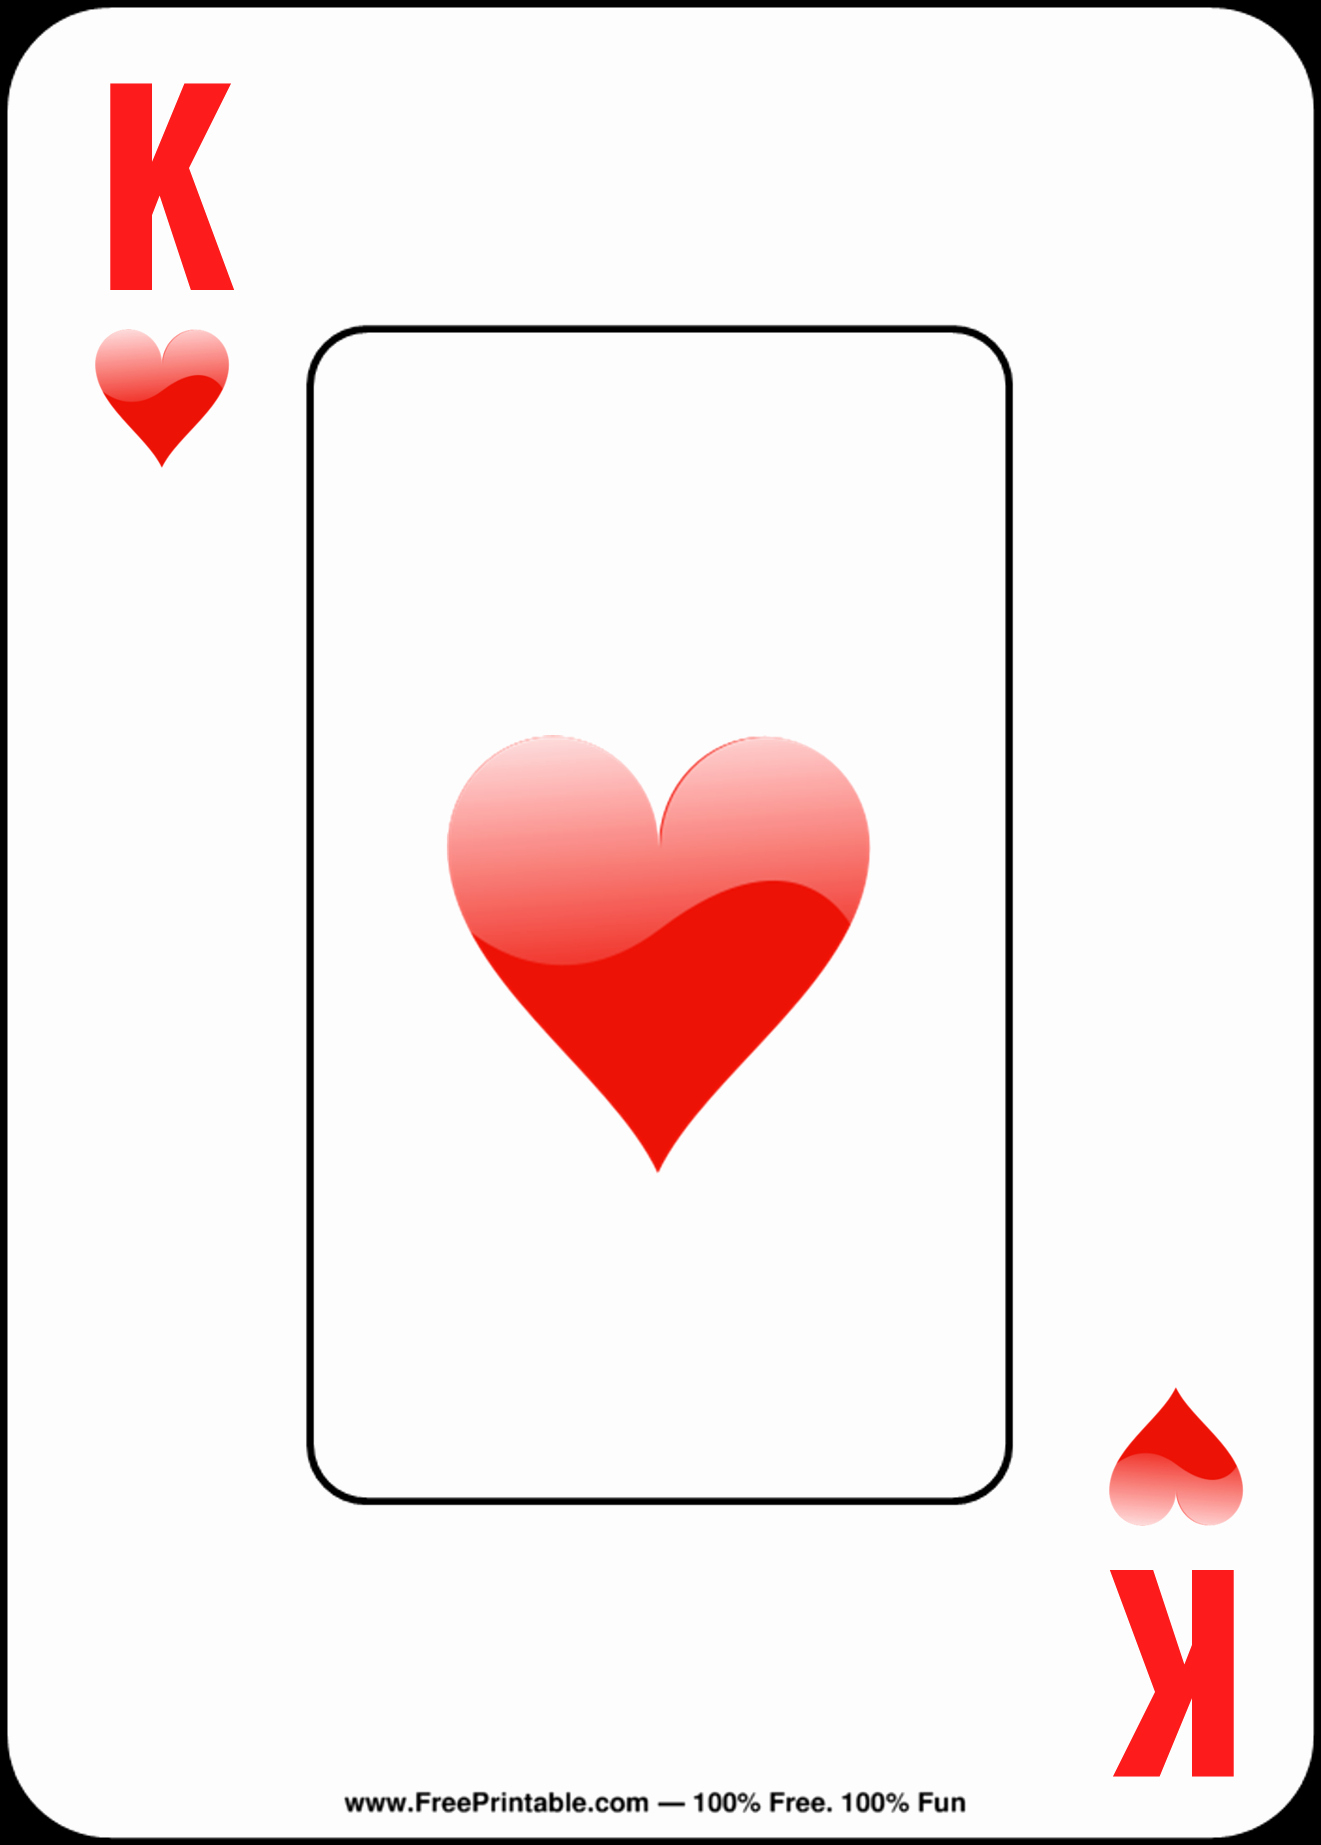 Deck Of Cards Template  Mathosproject In Free Printable Playing Cards Template